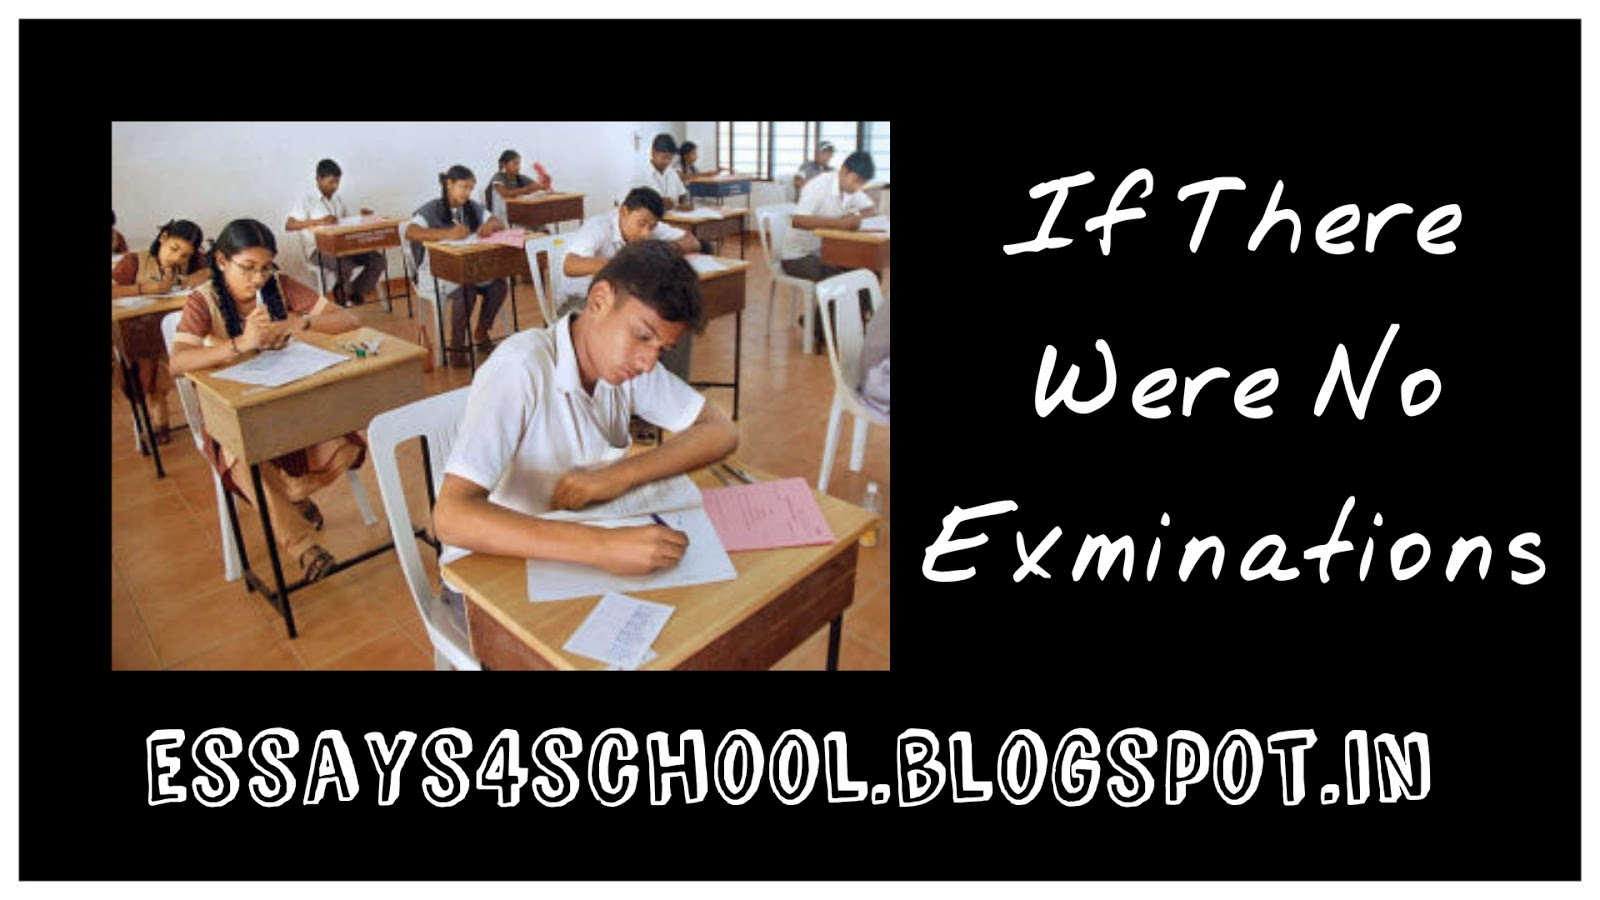 007 Iftherewerenoexamination Essay Examinations Incredible On Are Necessary Evils Board Full